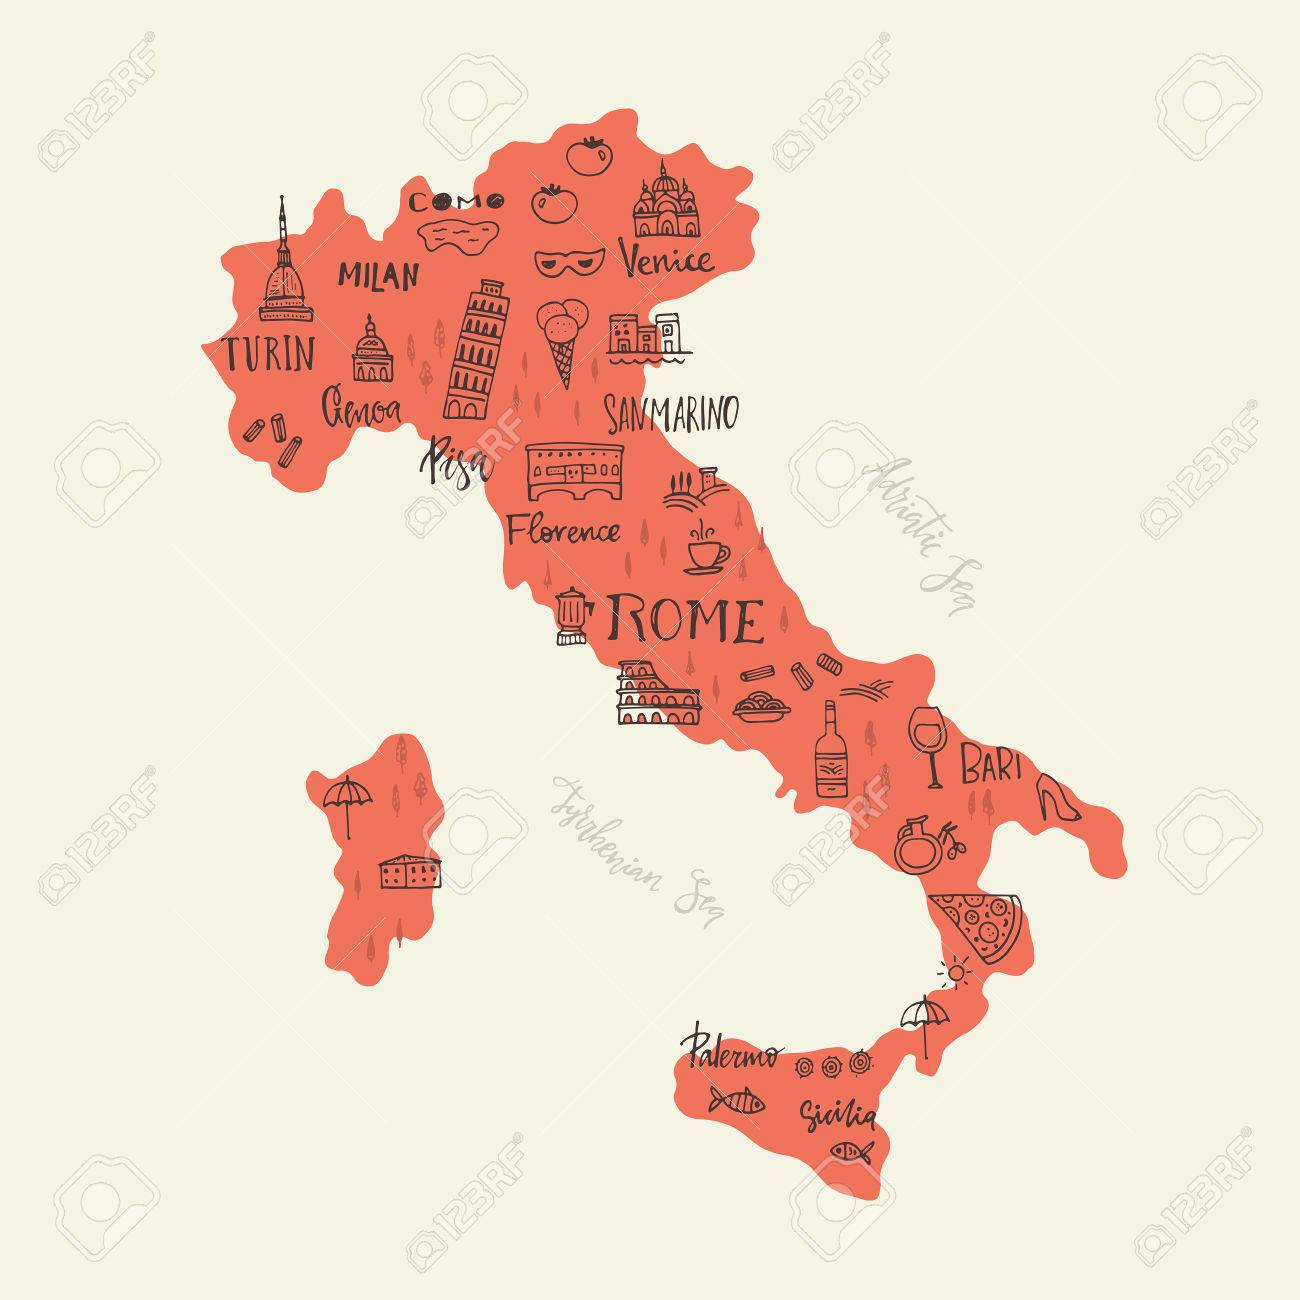 Handdrawn Symbols Of Italy On A Map Unique Illustration For